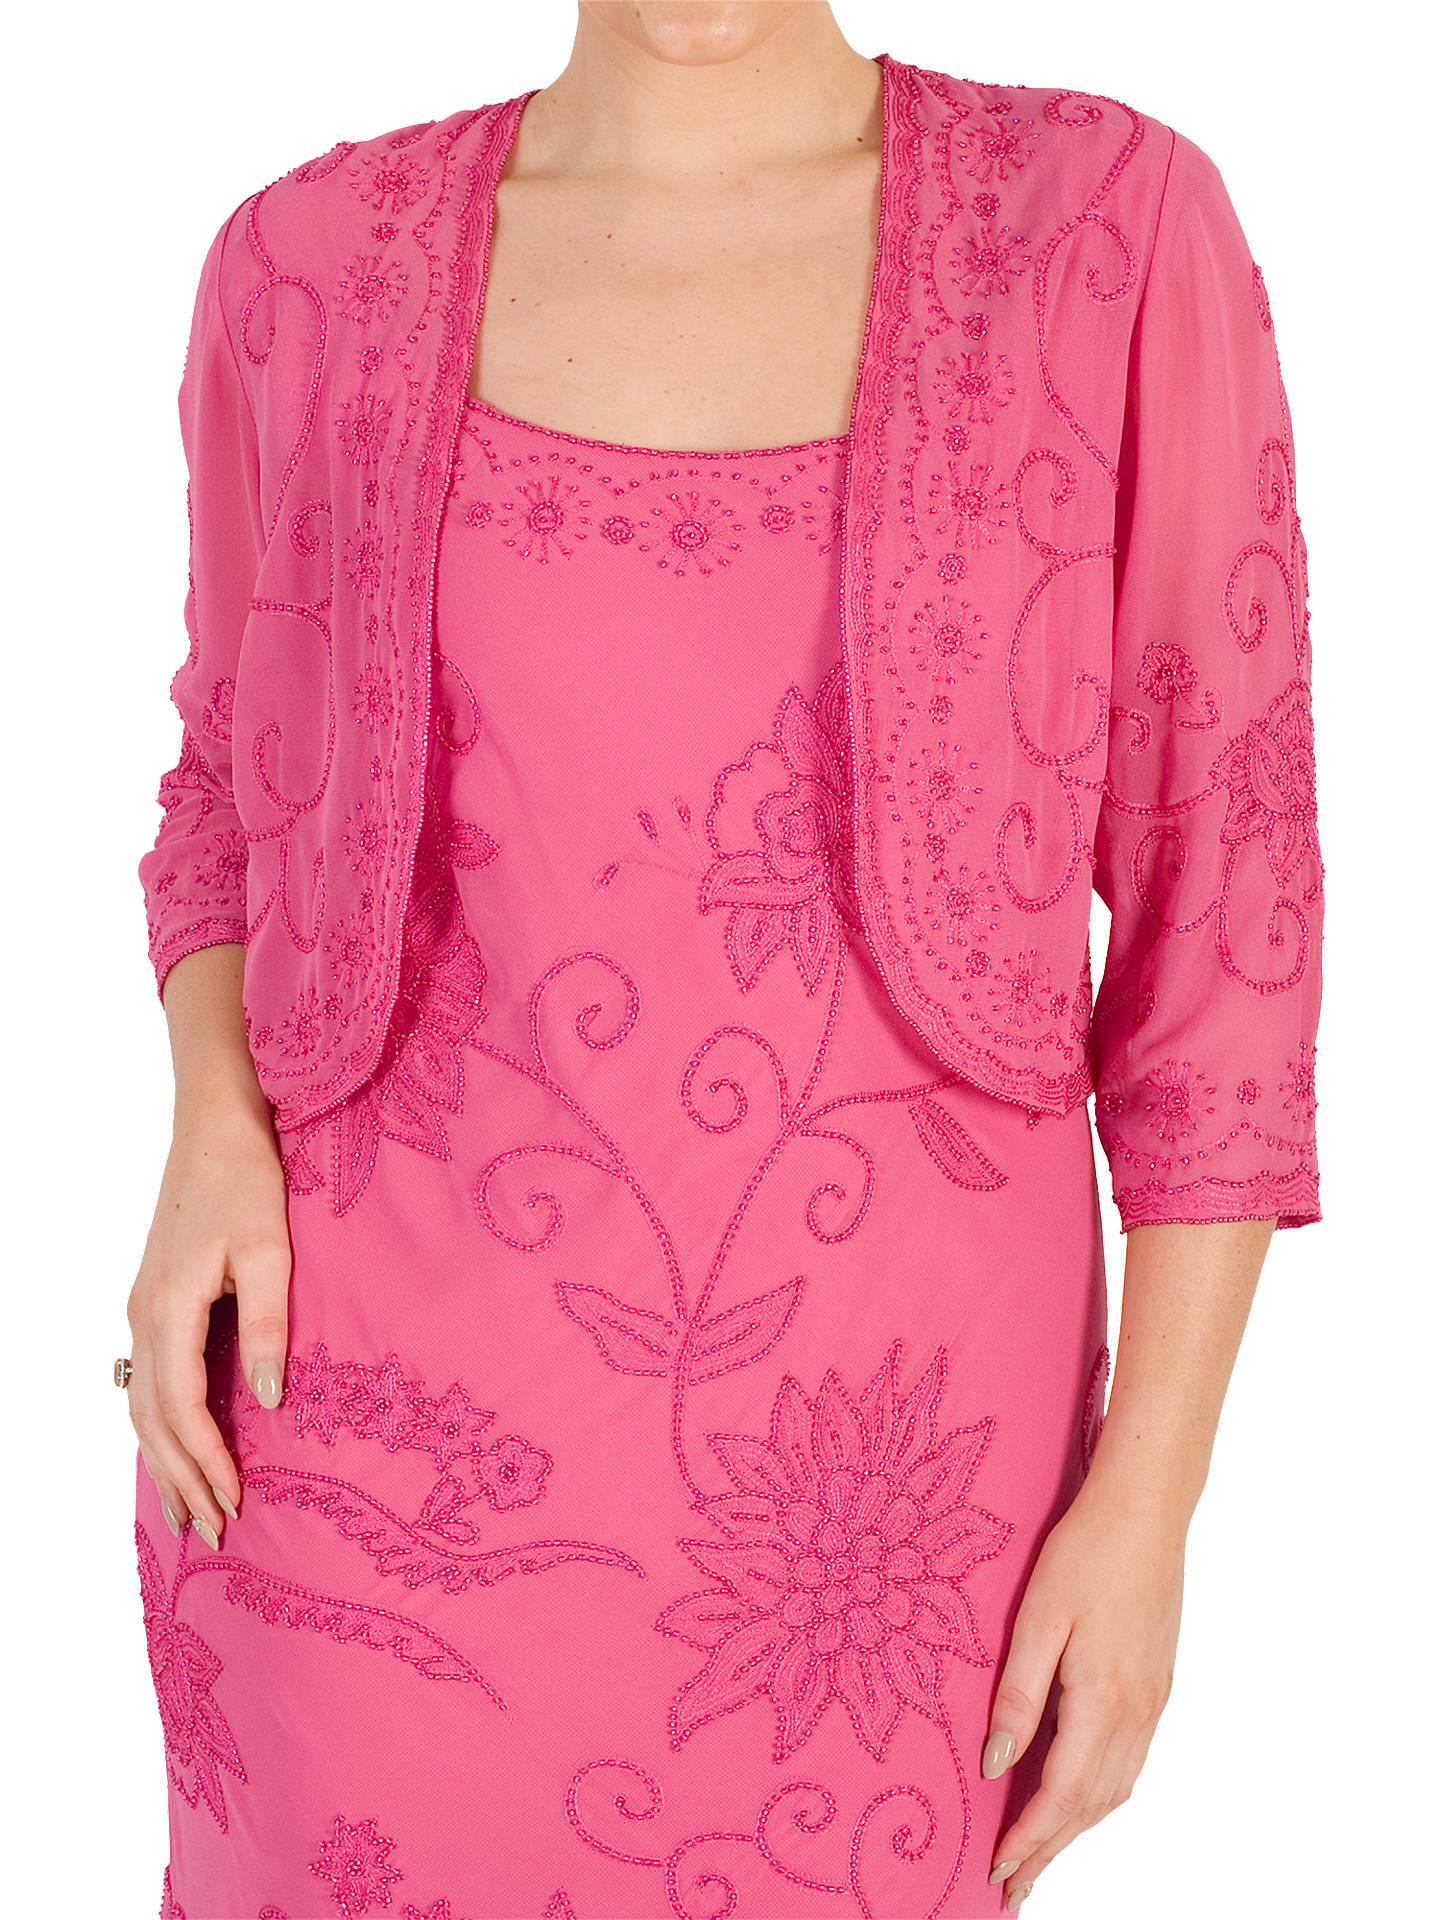 BuyChesca Embroidered Bolero, Rose Pink, 12 Online at johnlewis.com